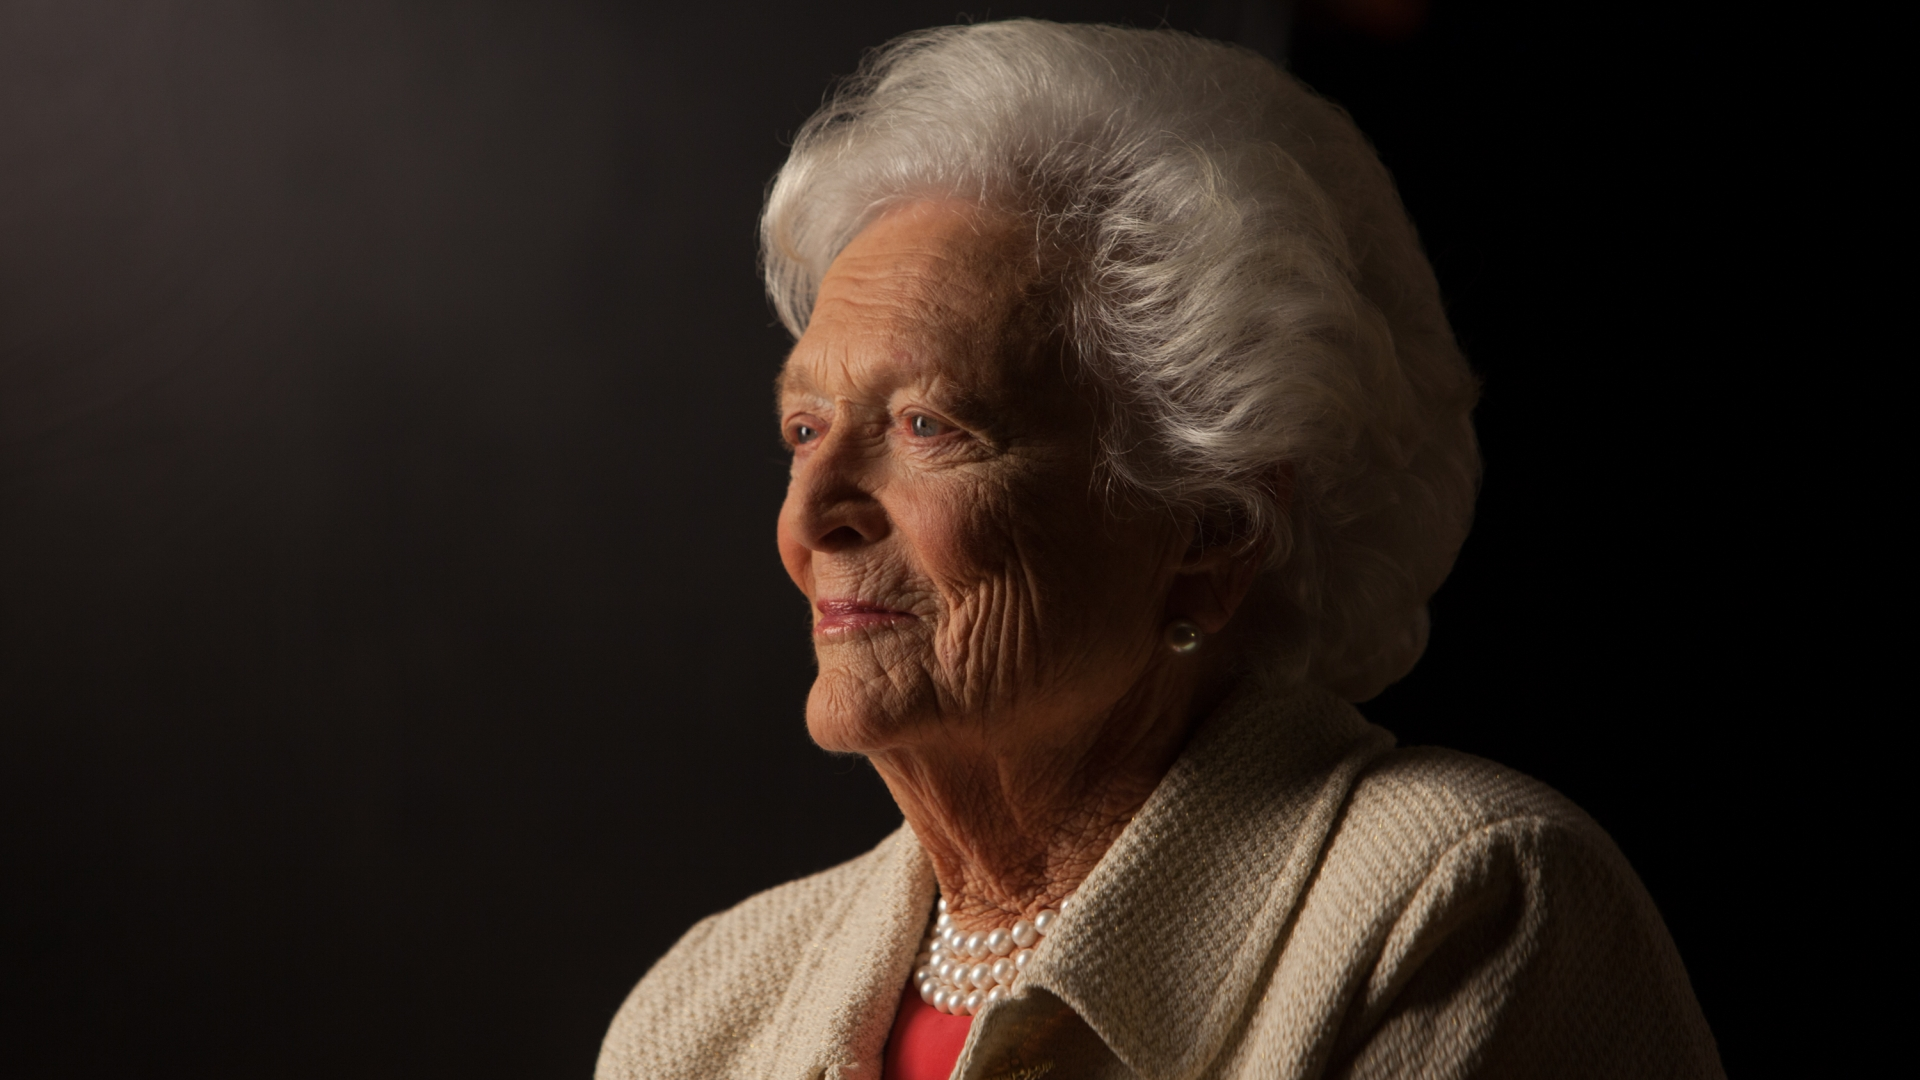 Former First Lady Barbara Bush, 2011. (Credit: David Hume Kennerly/Getty Images).